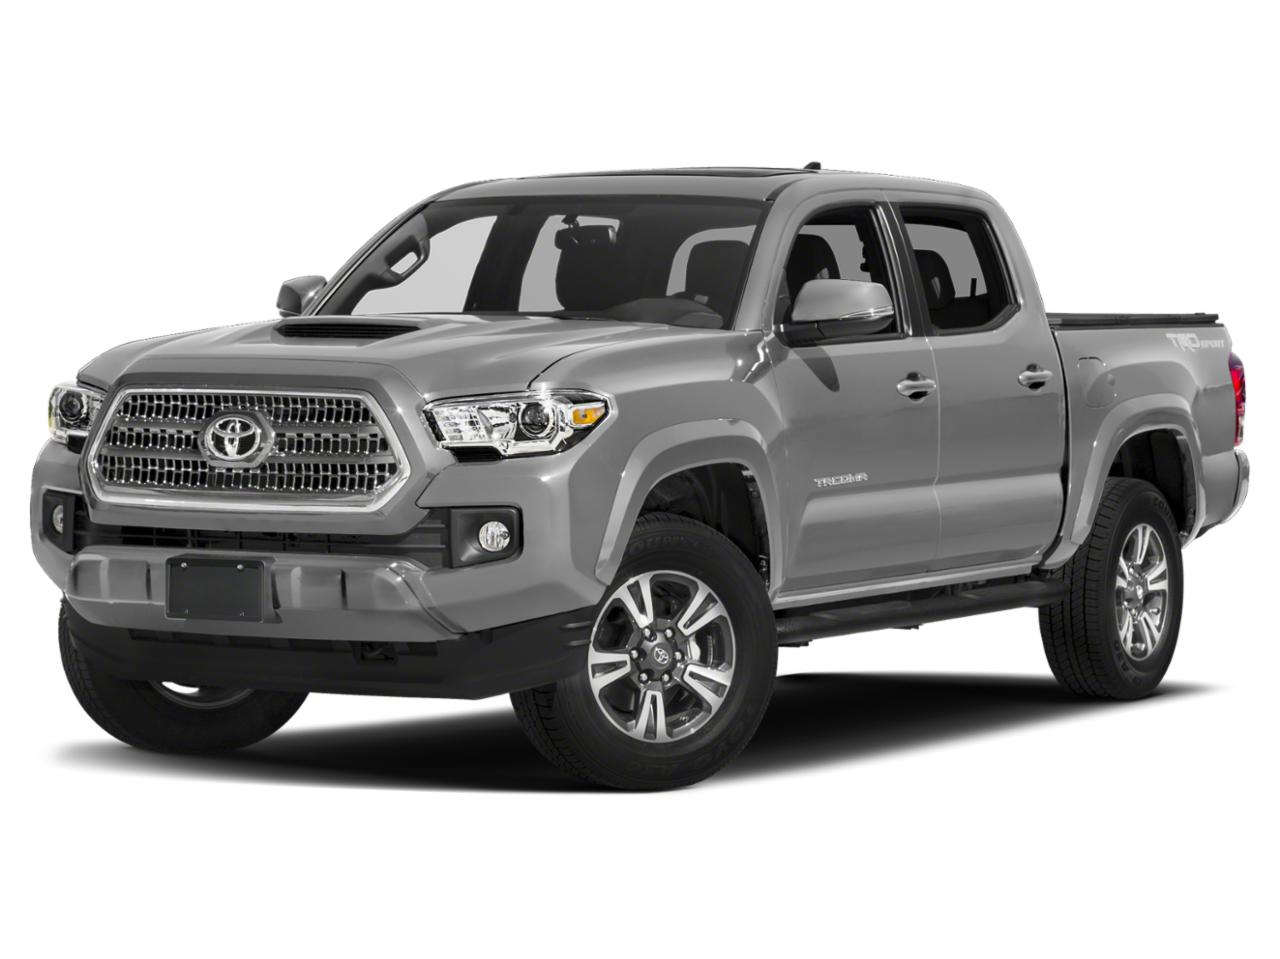 2018 Toyota Tacoma Vehicle Photo in Trevose, PA 19053